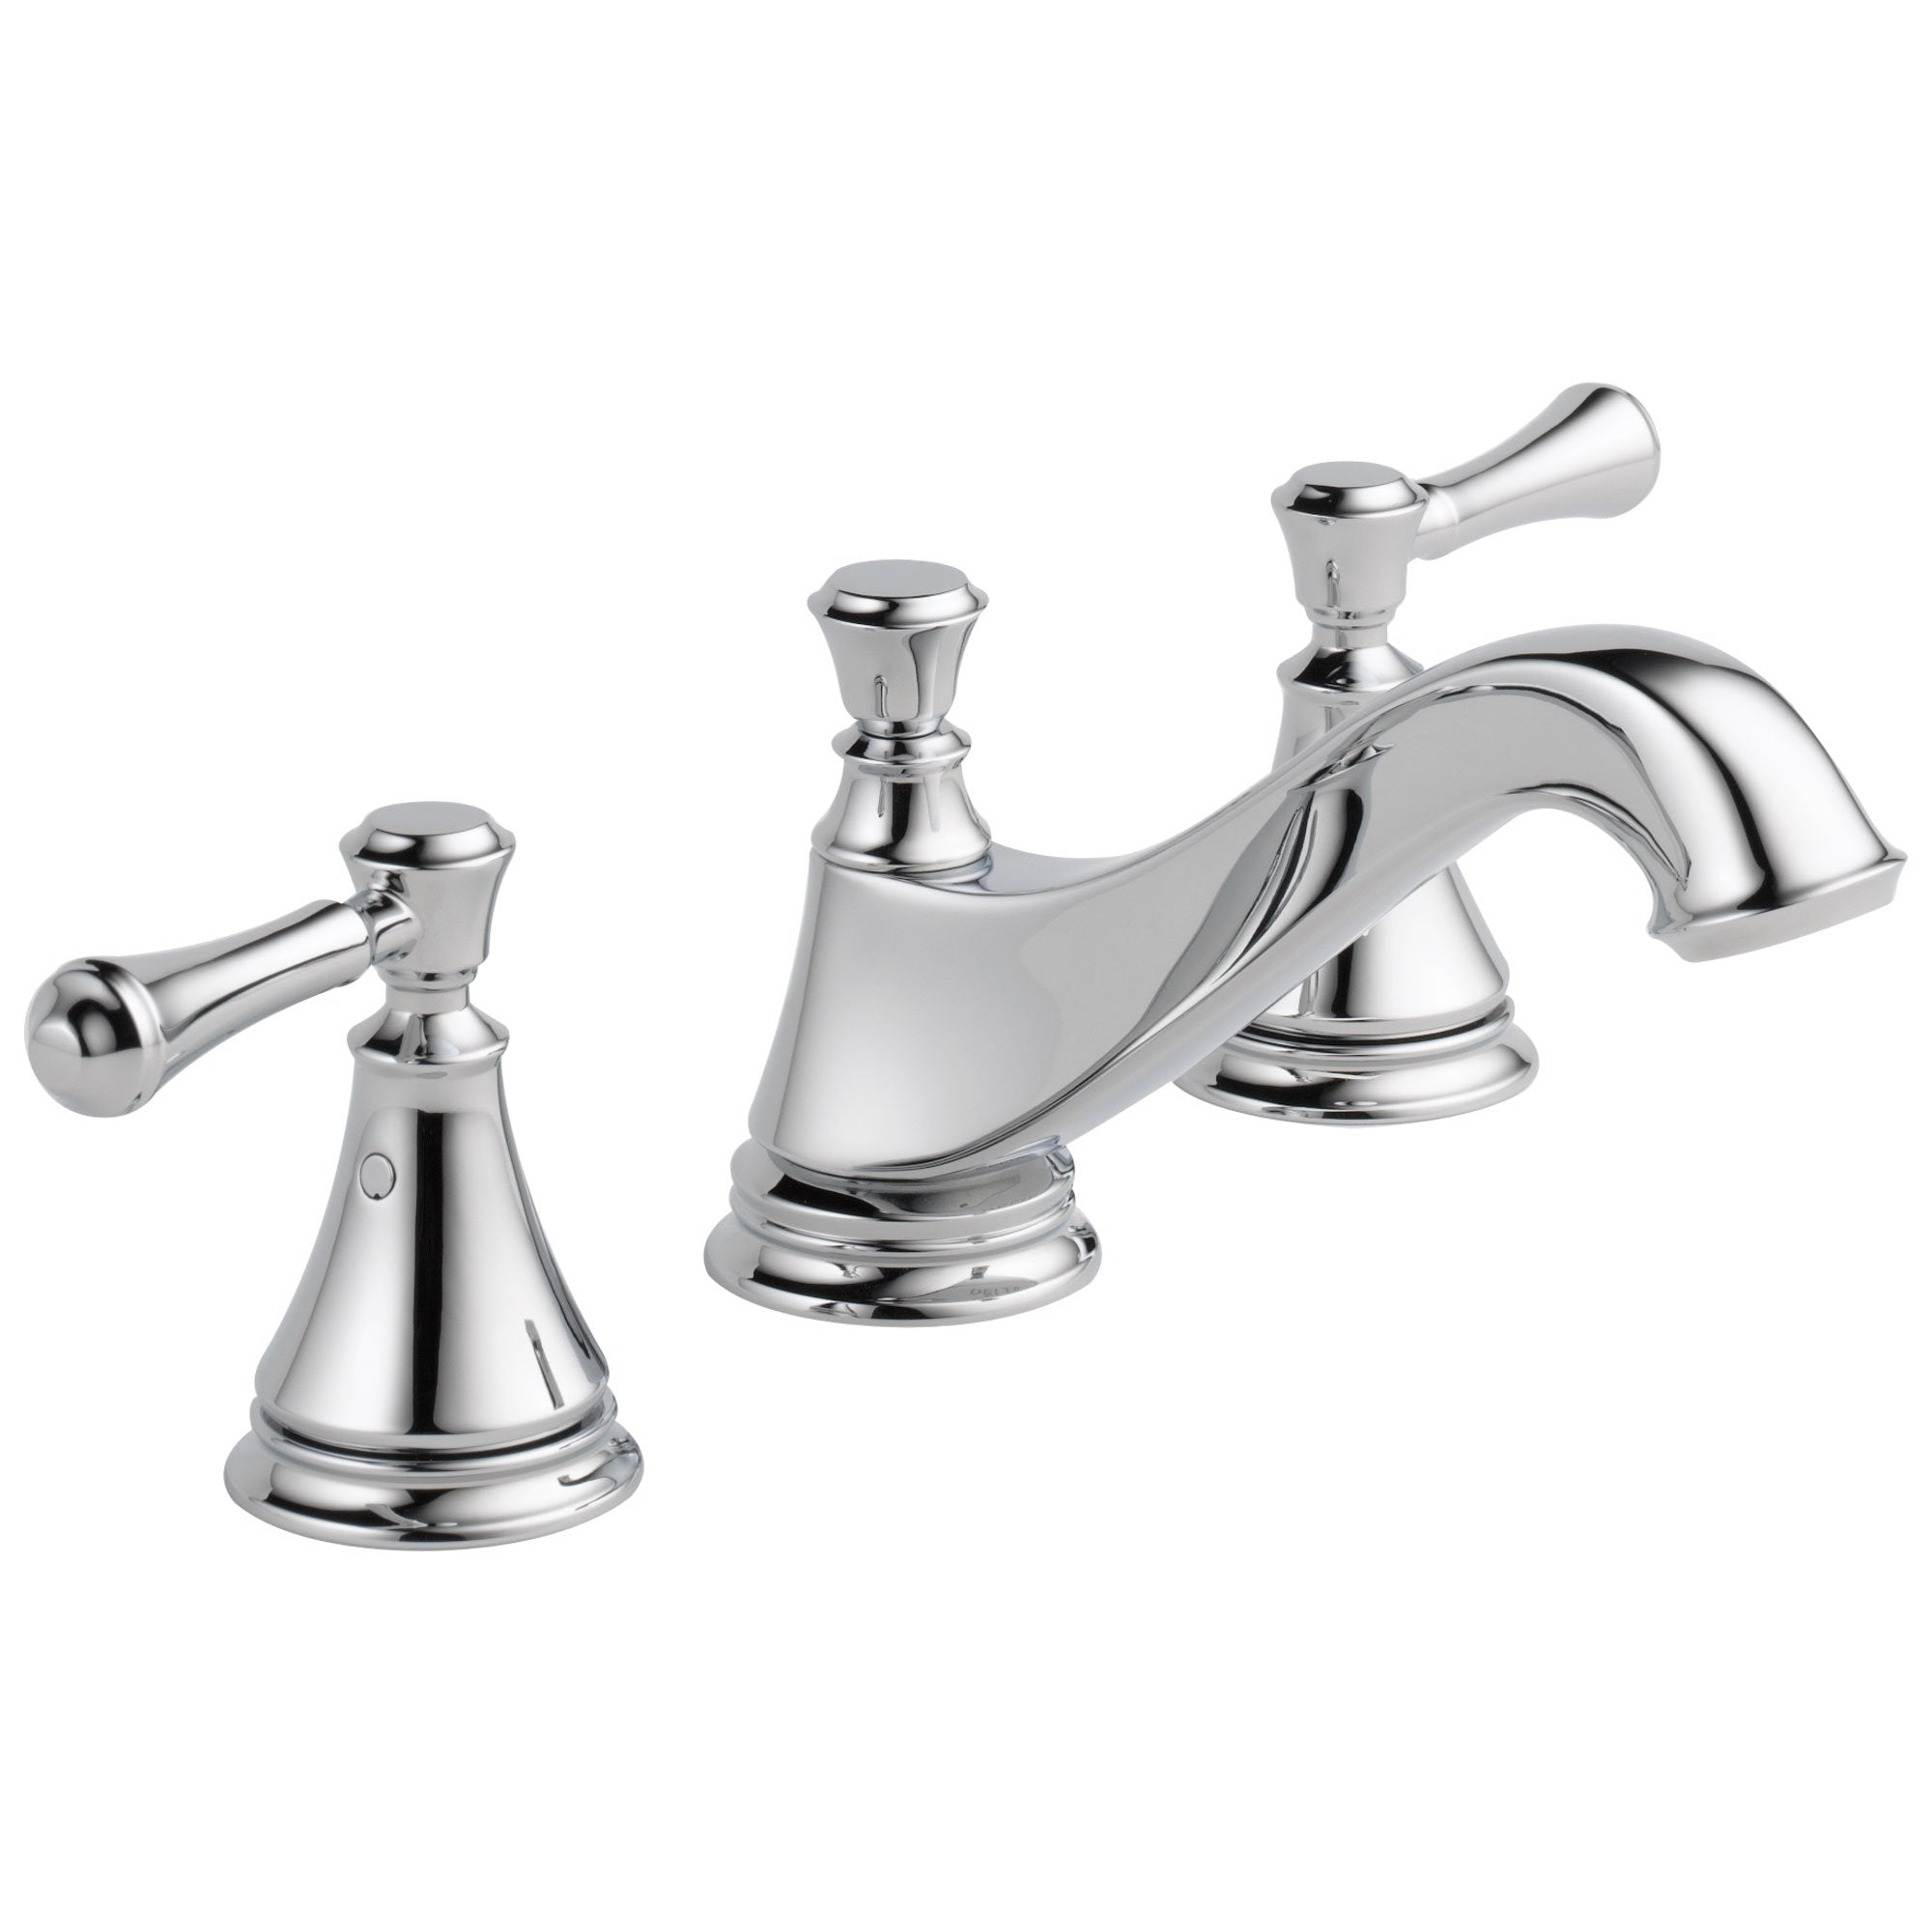 Delta Cassidy Collection Chrome Finish Traditional Low Spout Widespread Bathroom Sink Faucet INCLUDES Two Lever Handles and Drain D1796V